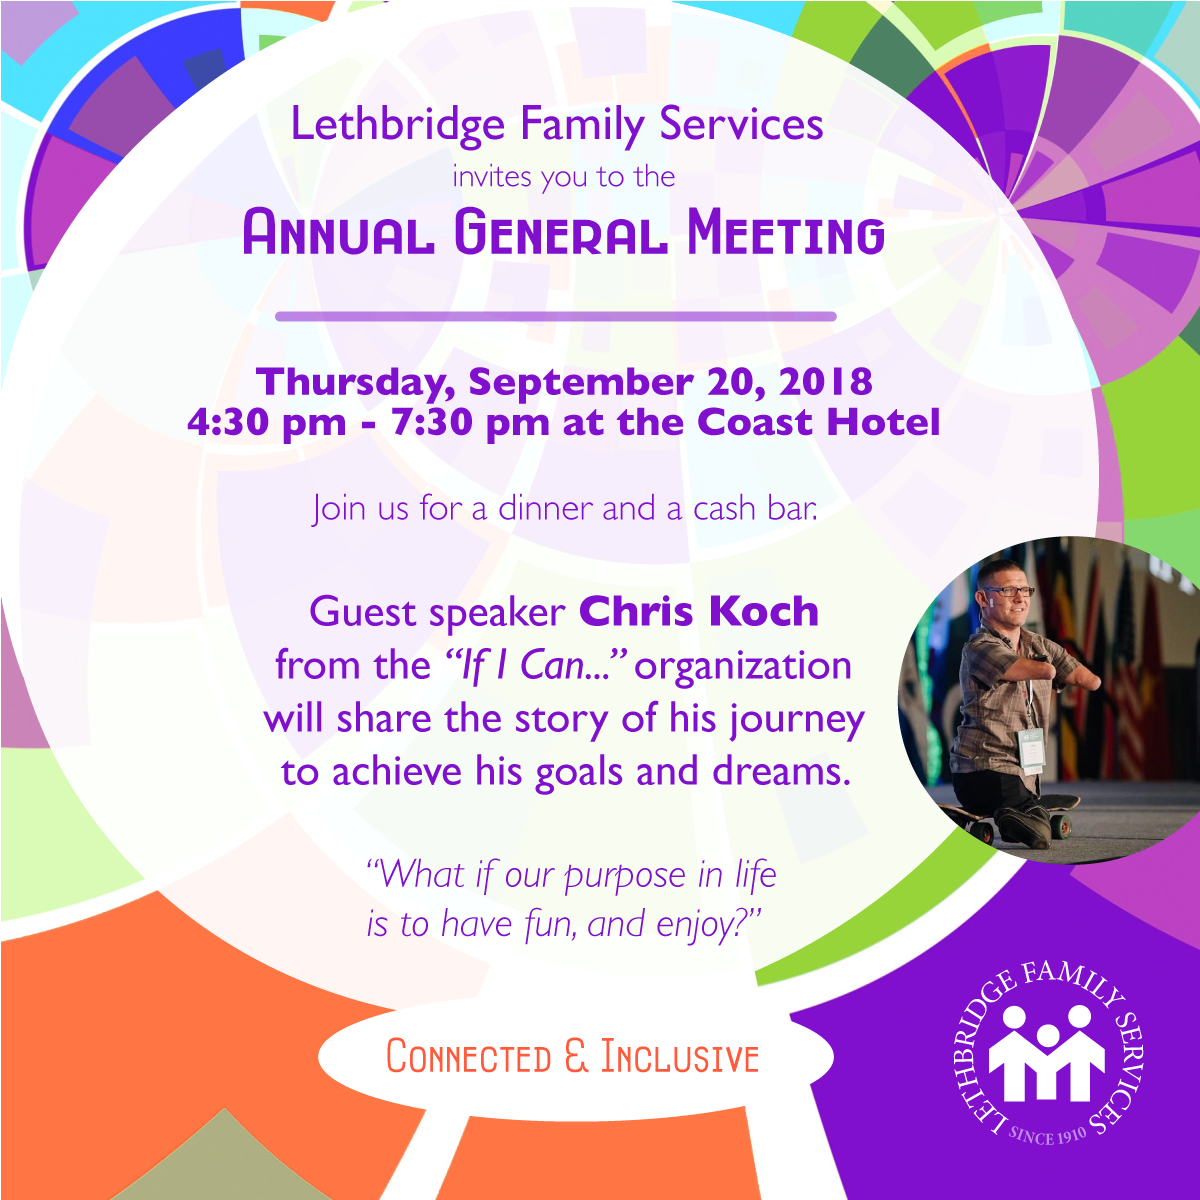 Invite to Lethbridge Family Services Annual General Meeting